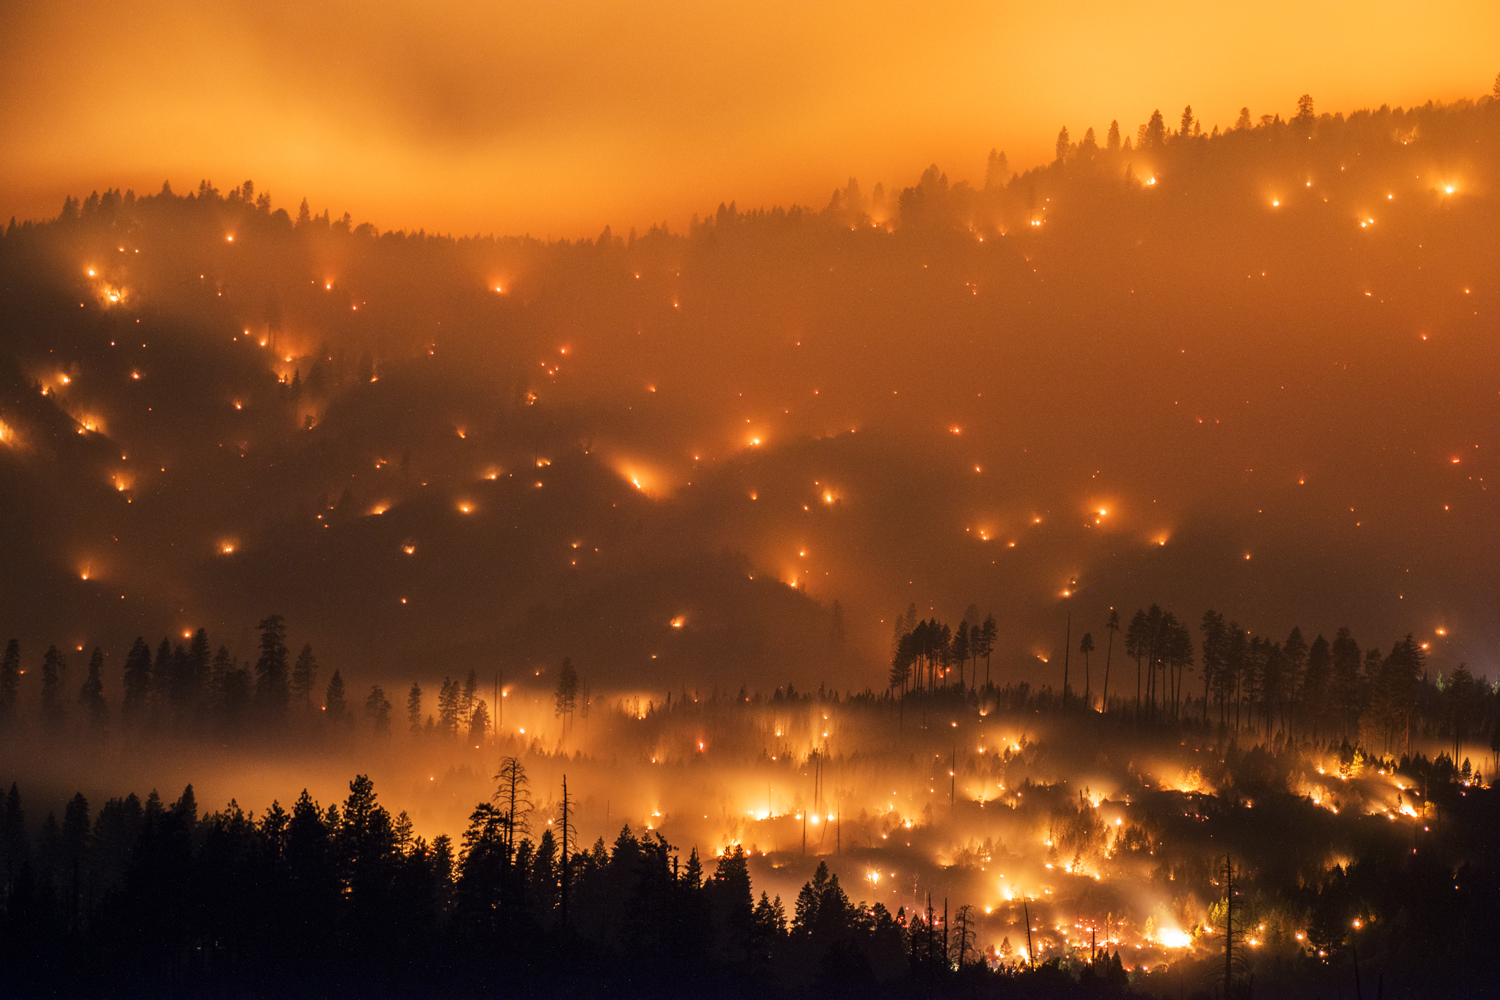 Jul. 27, 2014. The El Portal Fire burns on a hillside  in the Stanislaus National Forest and Yosemite National Park on Sunday evening. The community of El Portal was under a mandatory evacuation. By Tuesday the blaze had burned nearly 3,000 acres.